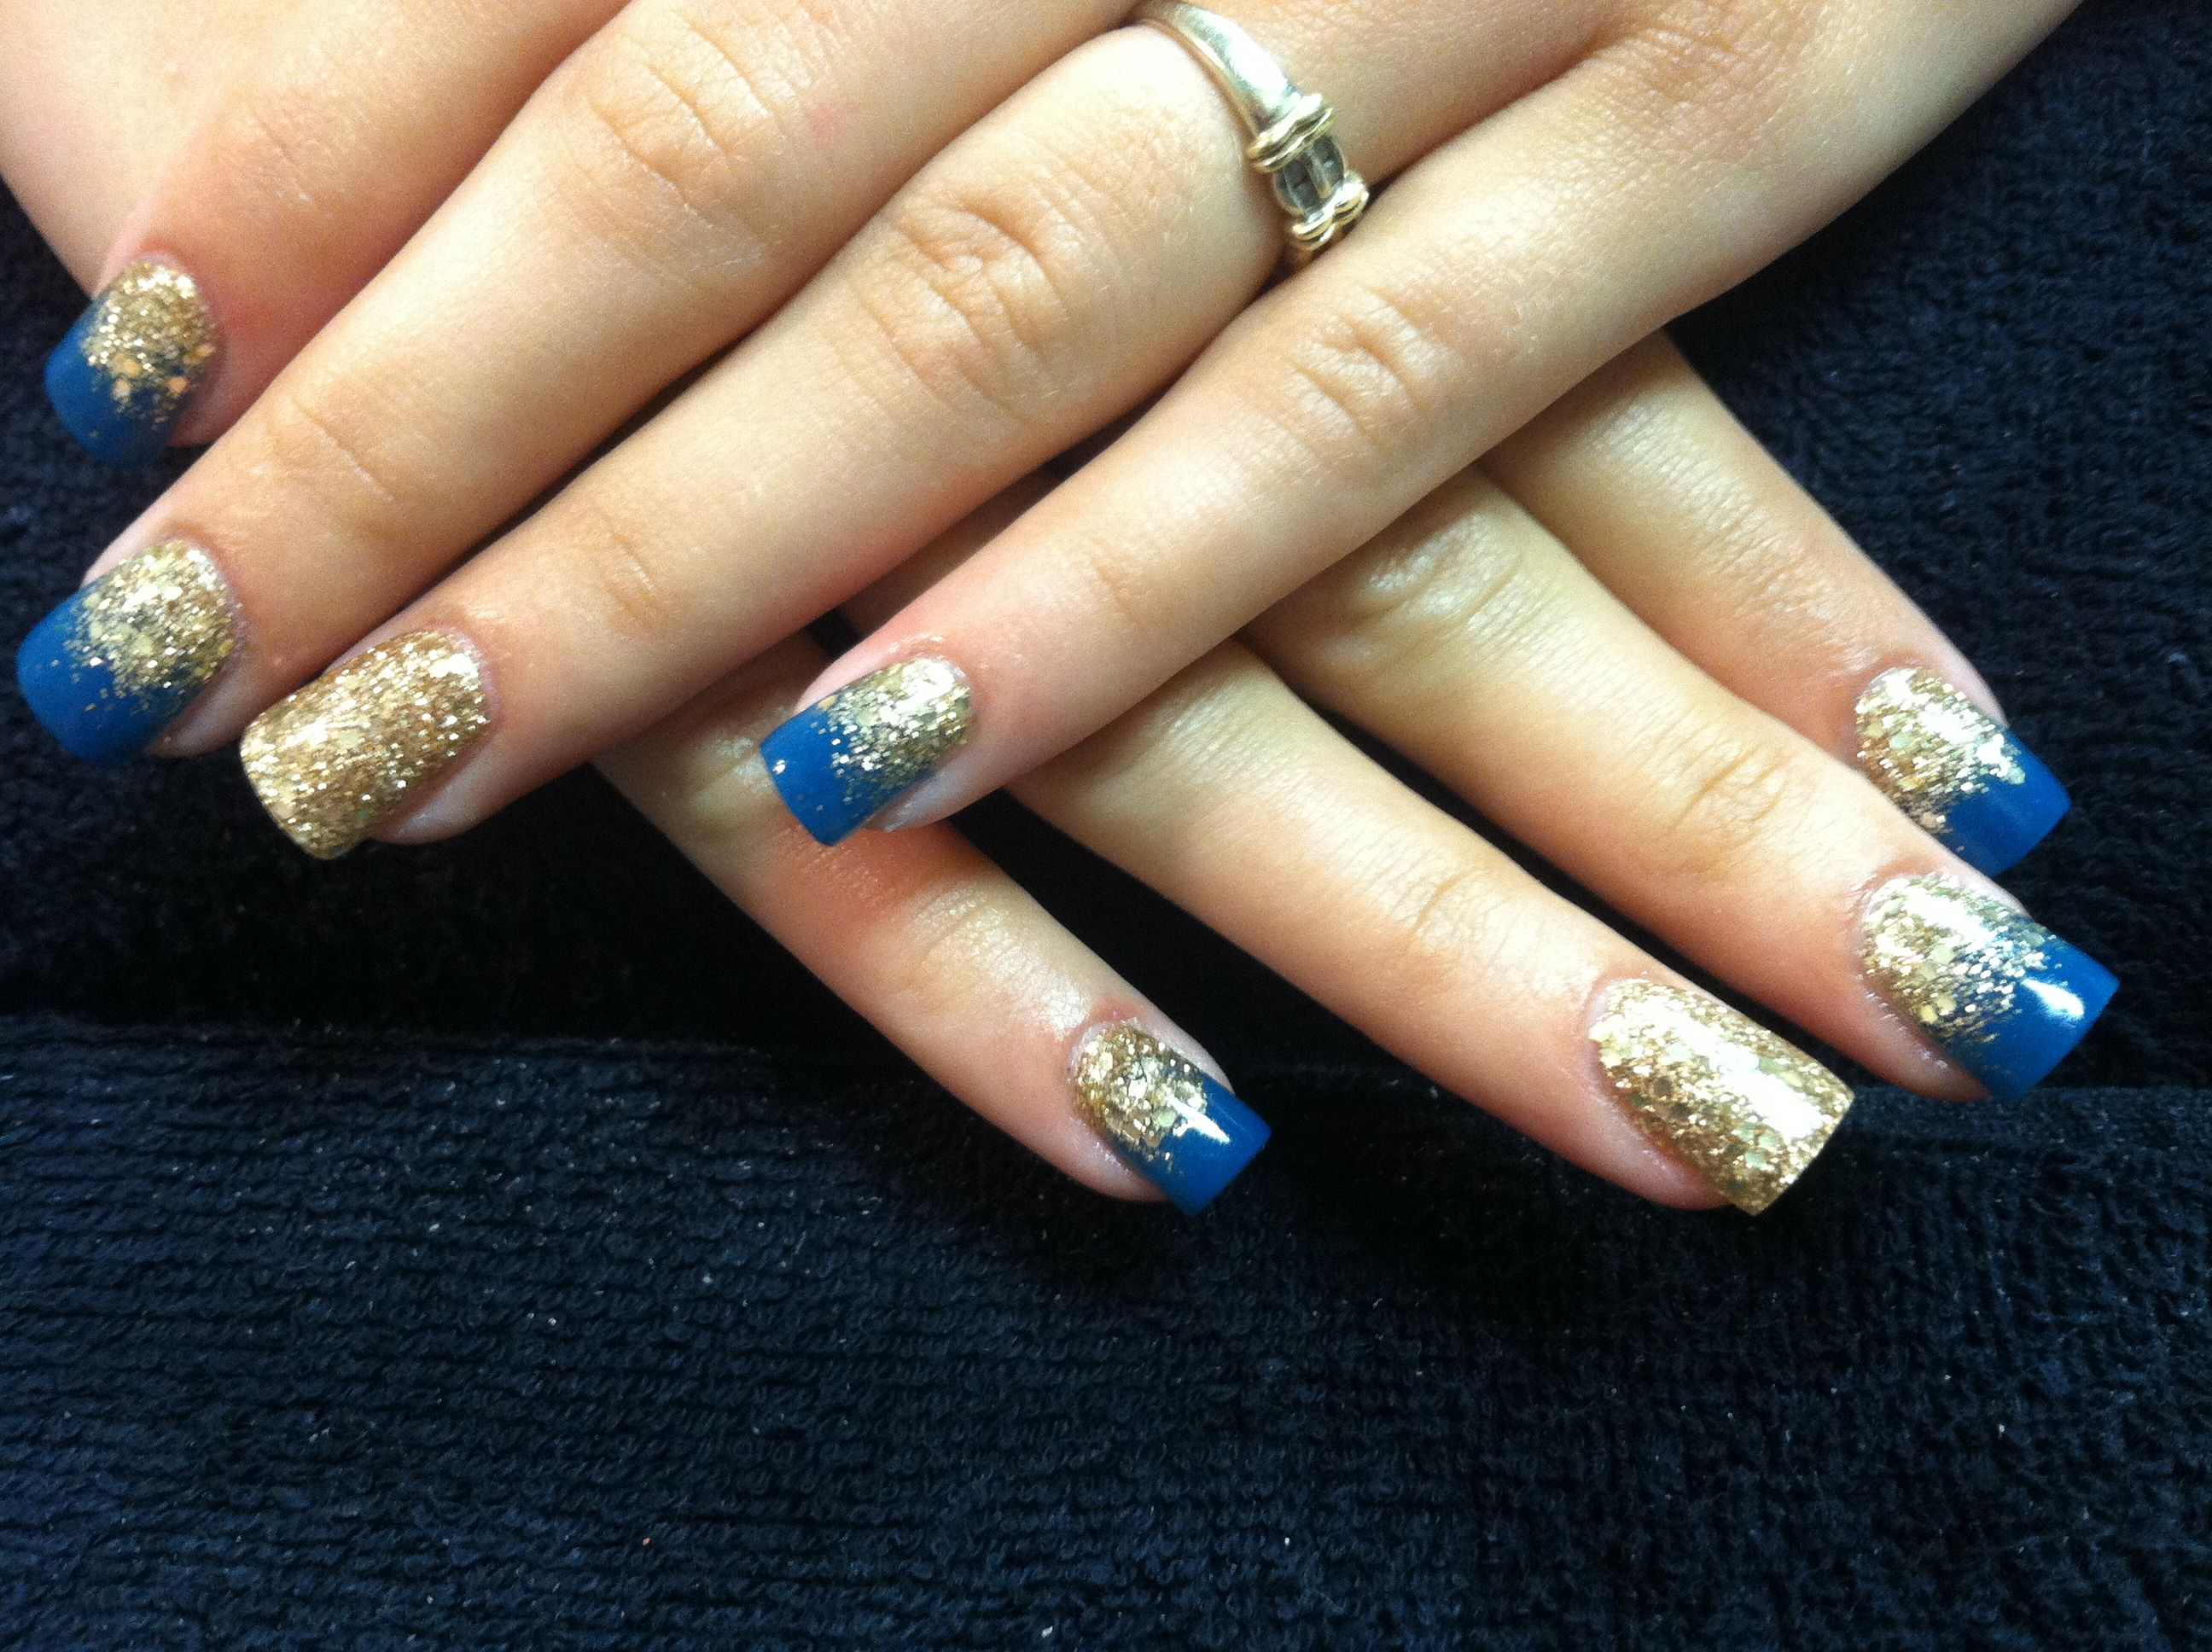 acrylic nails gold blue glitter fade | my acrylic nails